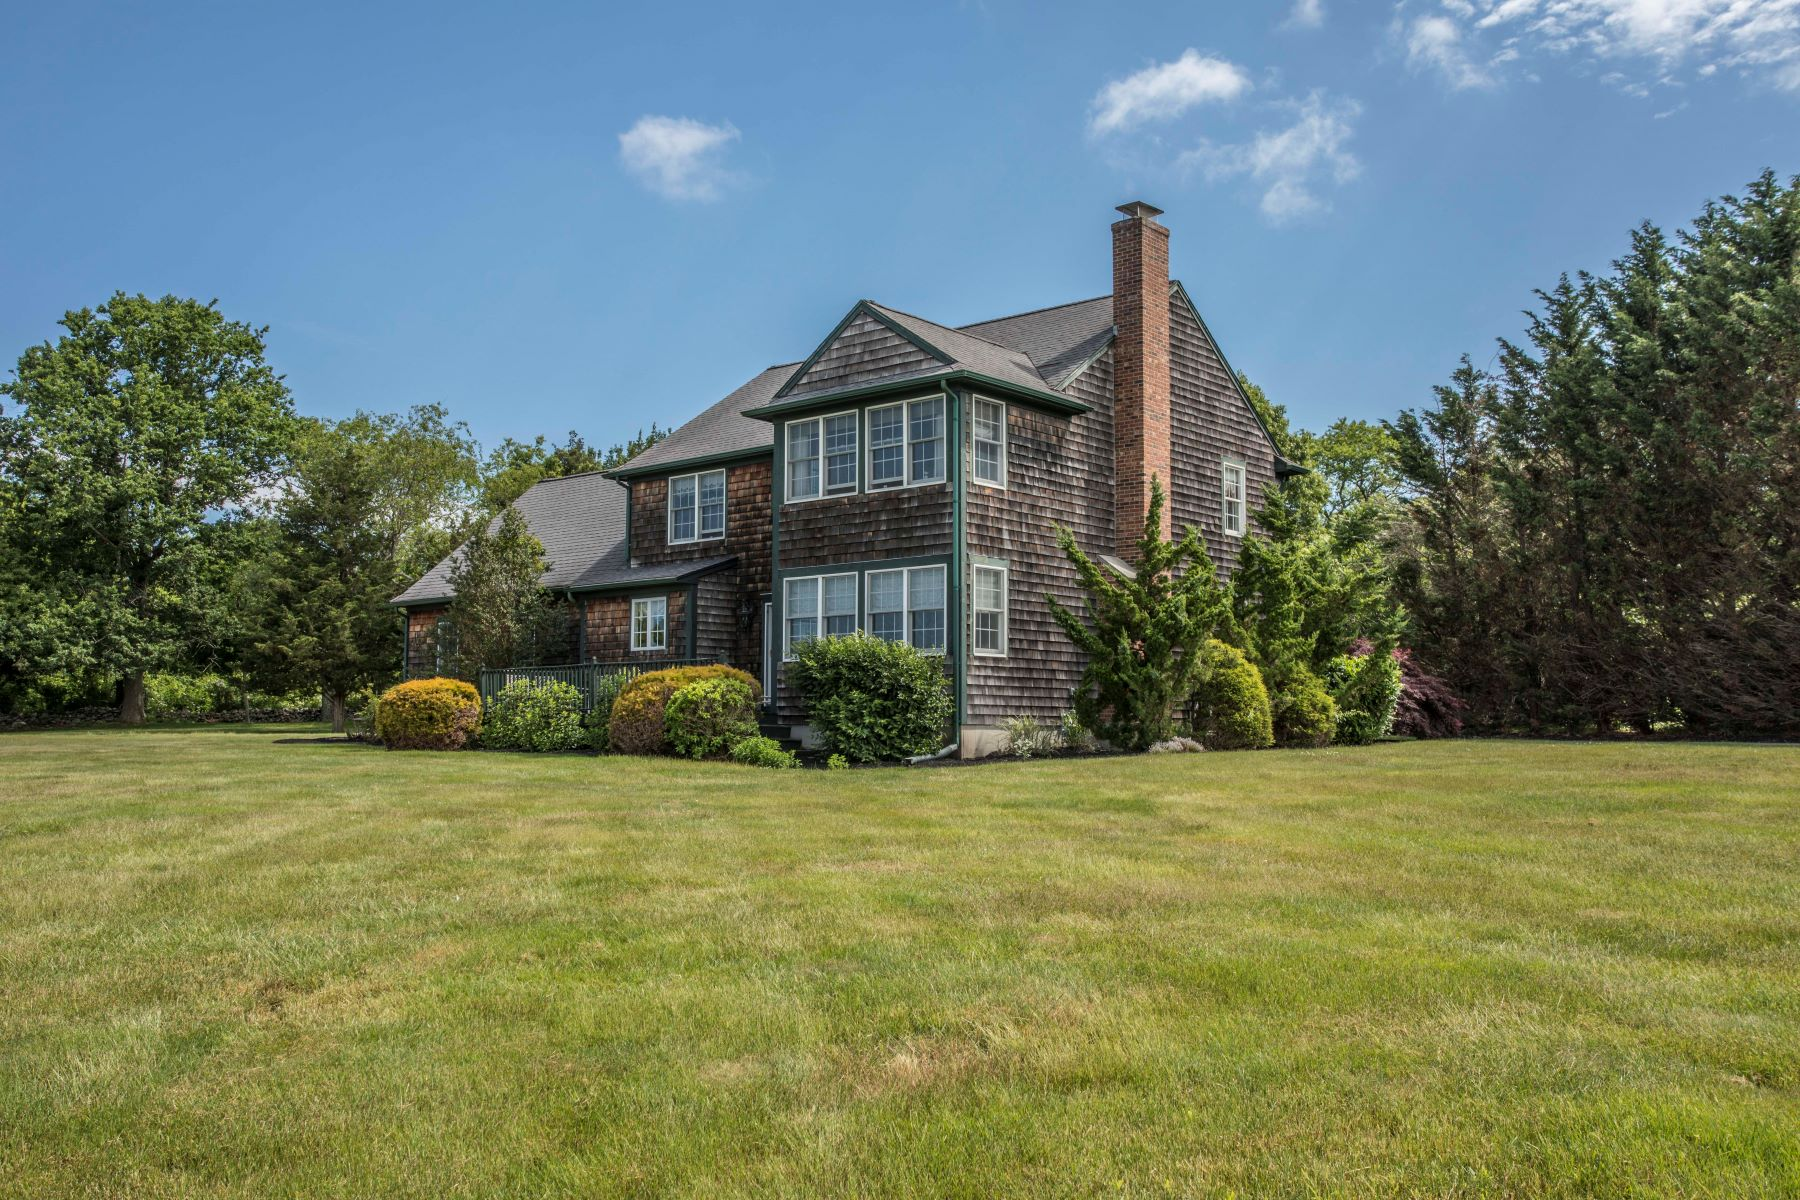 Single Family Homes for Sale at King's Grant Water Views 121 King Charles Drive Portsmouth, Rhode Island 02871 United States